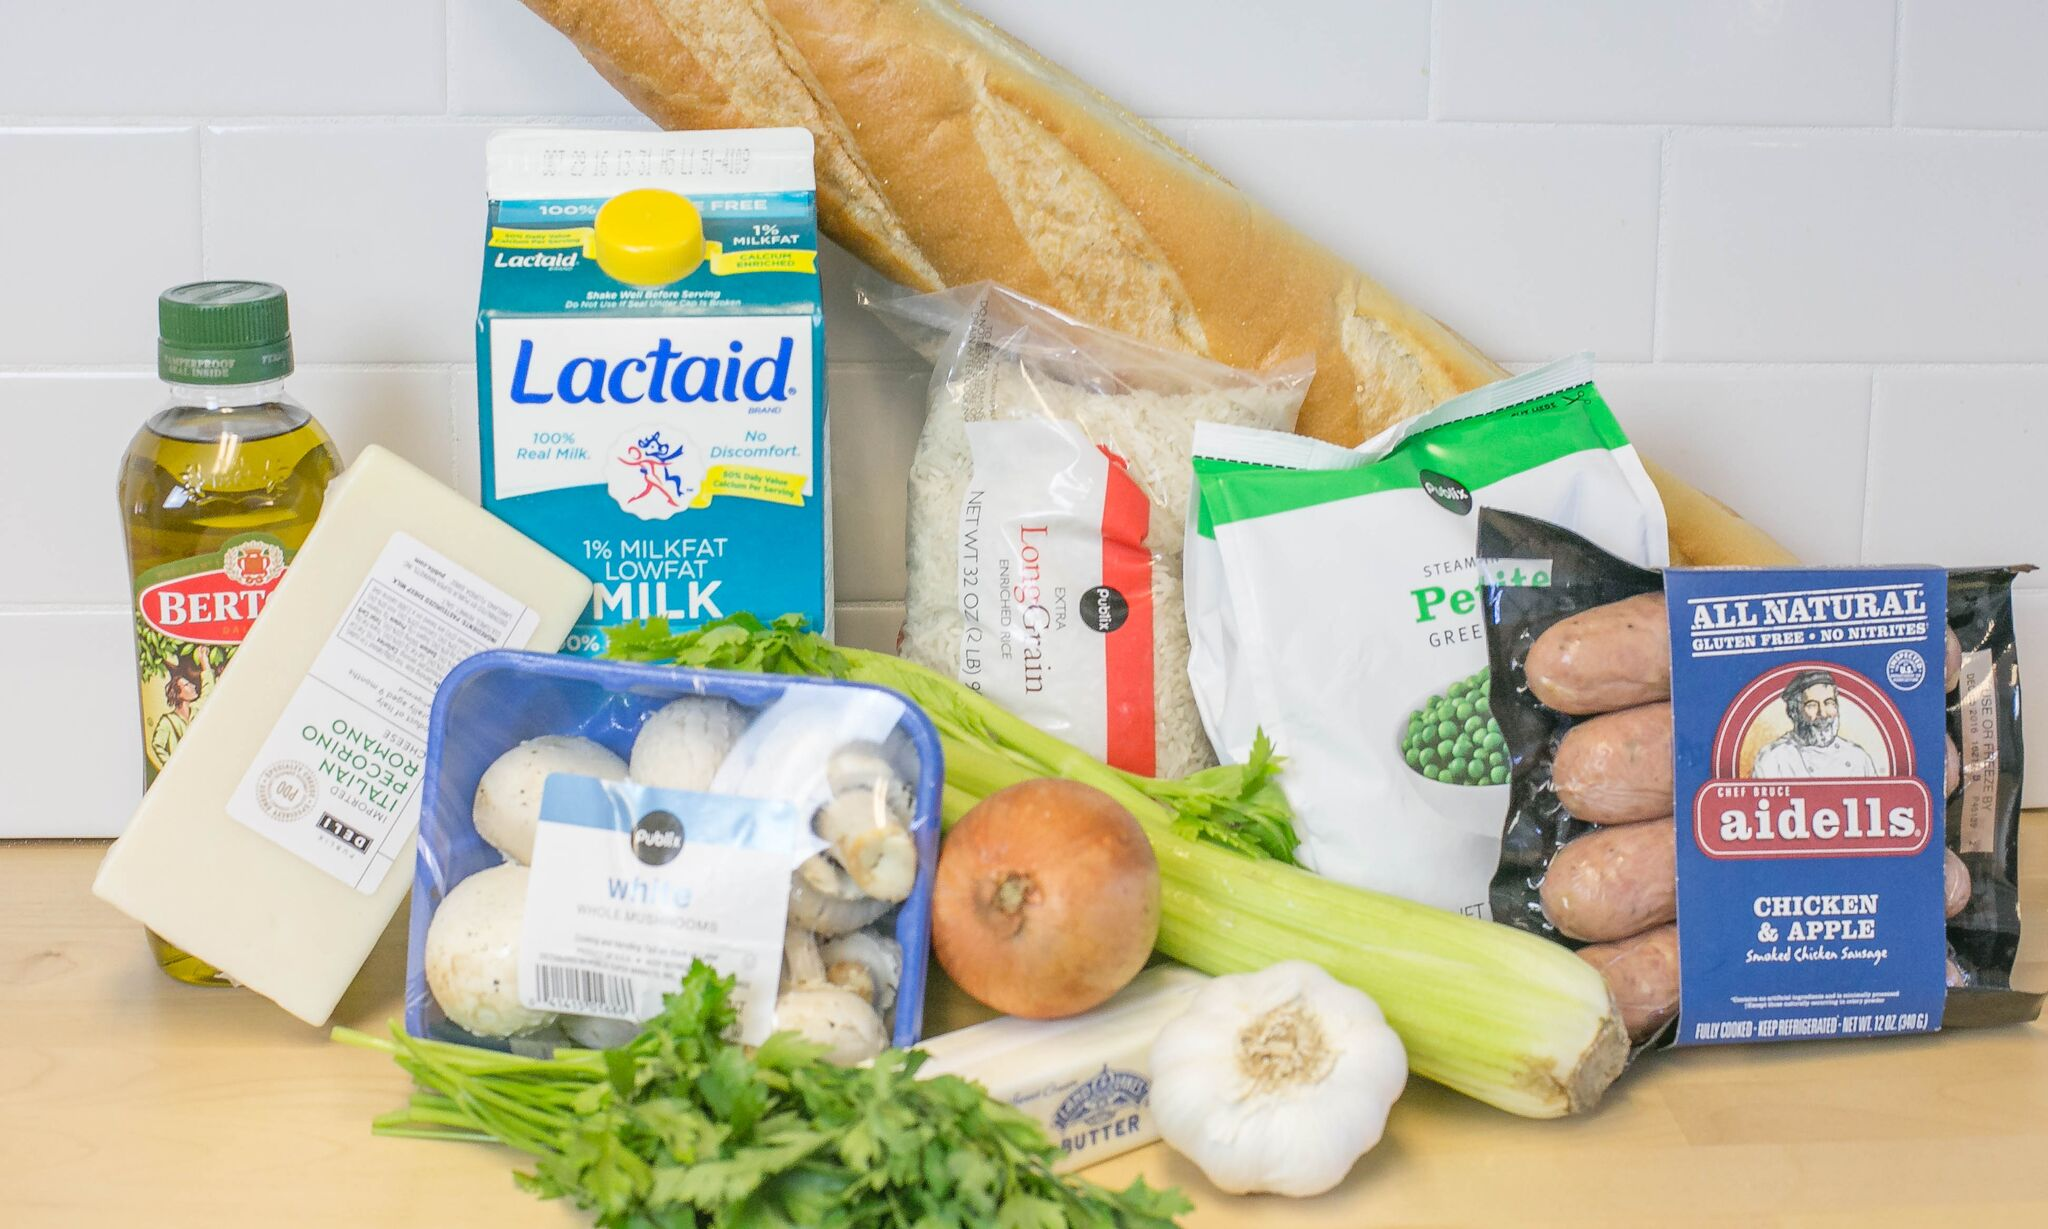 Assemble your ingredients for the rice stuffing: Milk, olive oil, cheese, mushrooms, onions, garlic, frozen peas, rice, bread, sausage, celery, butter and fresh parsley.